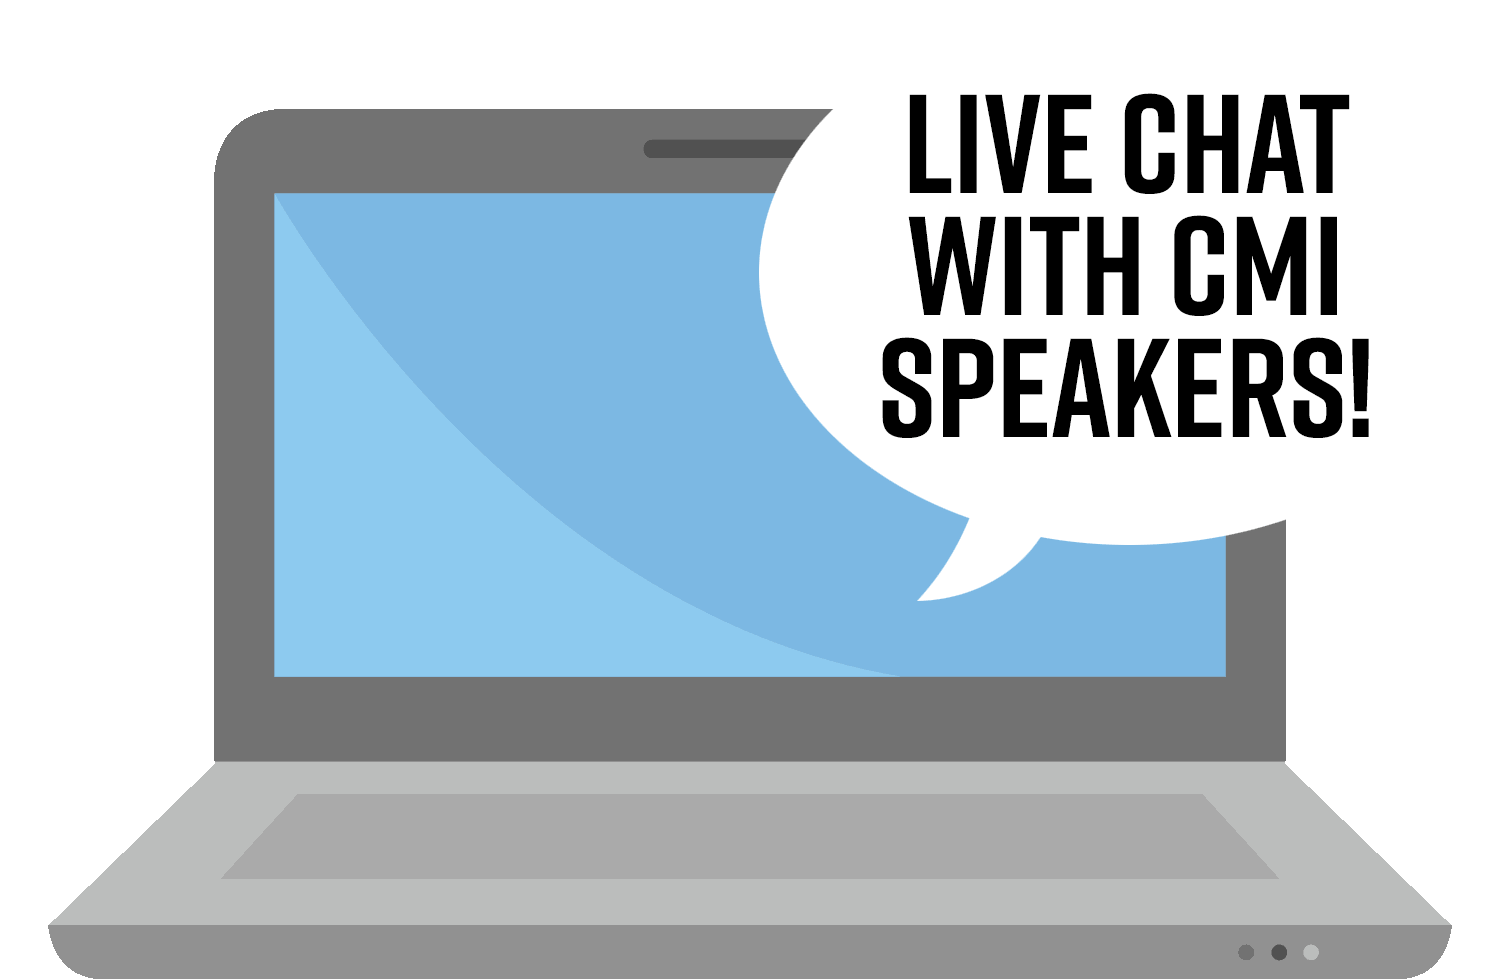 Live chat with CMI speakers! (computer image)